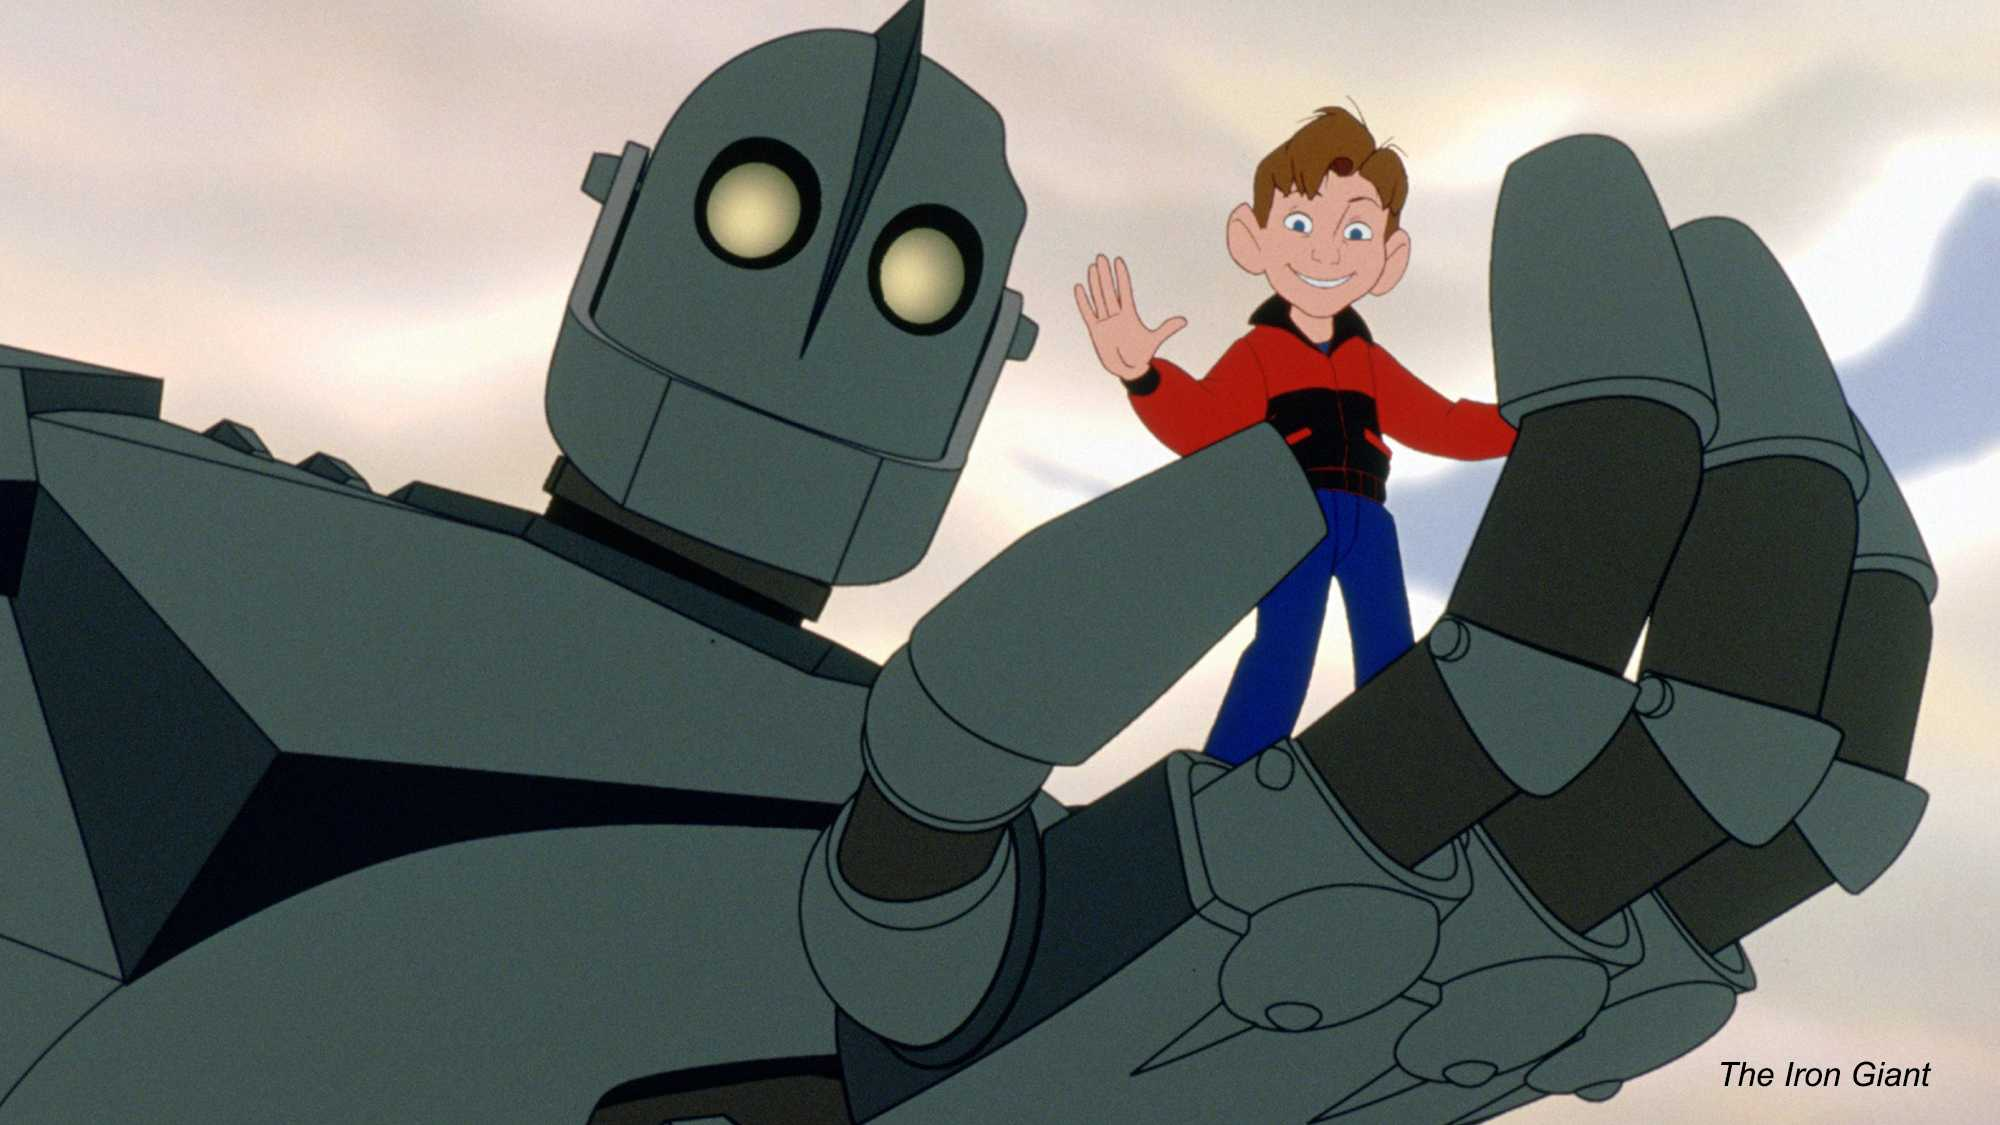 The Iron Giant (image 1)